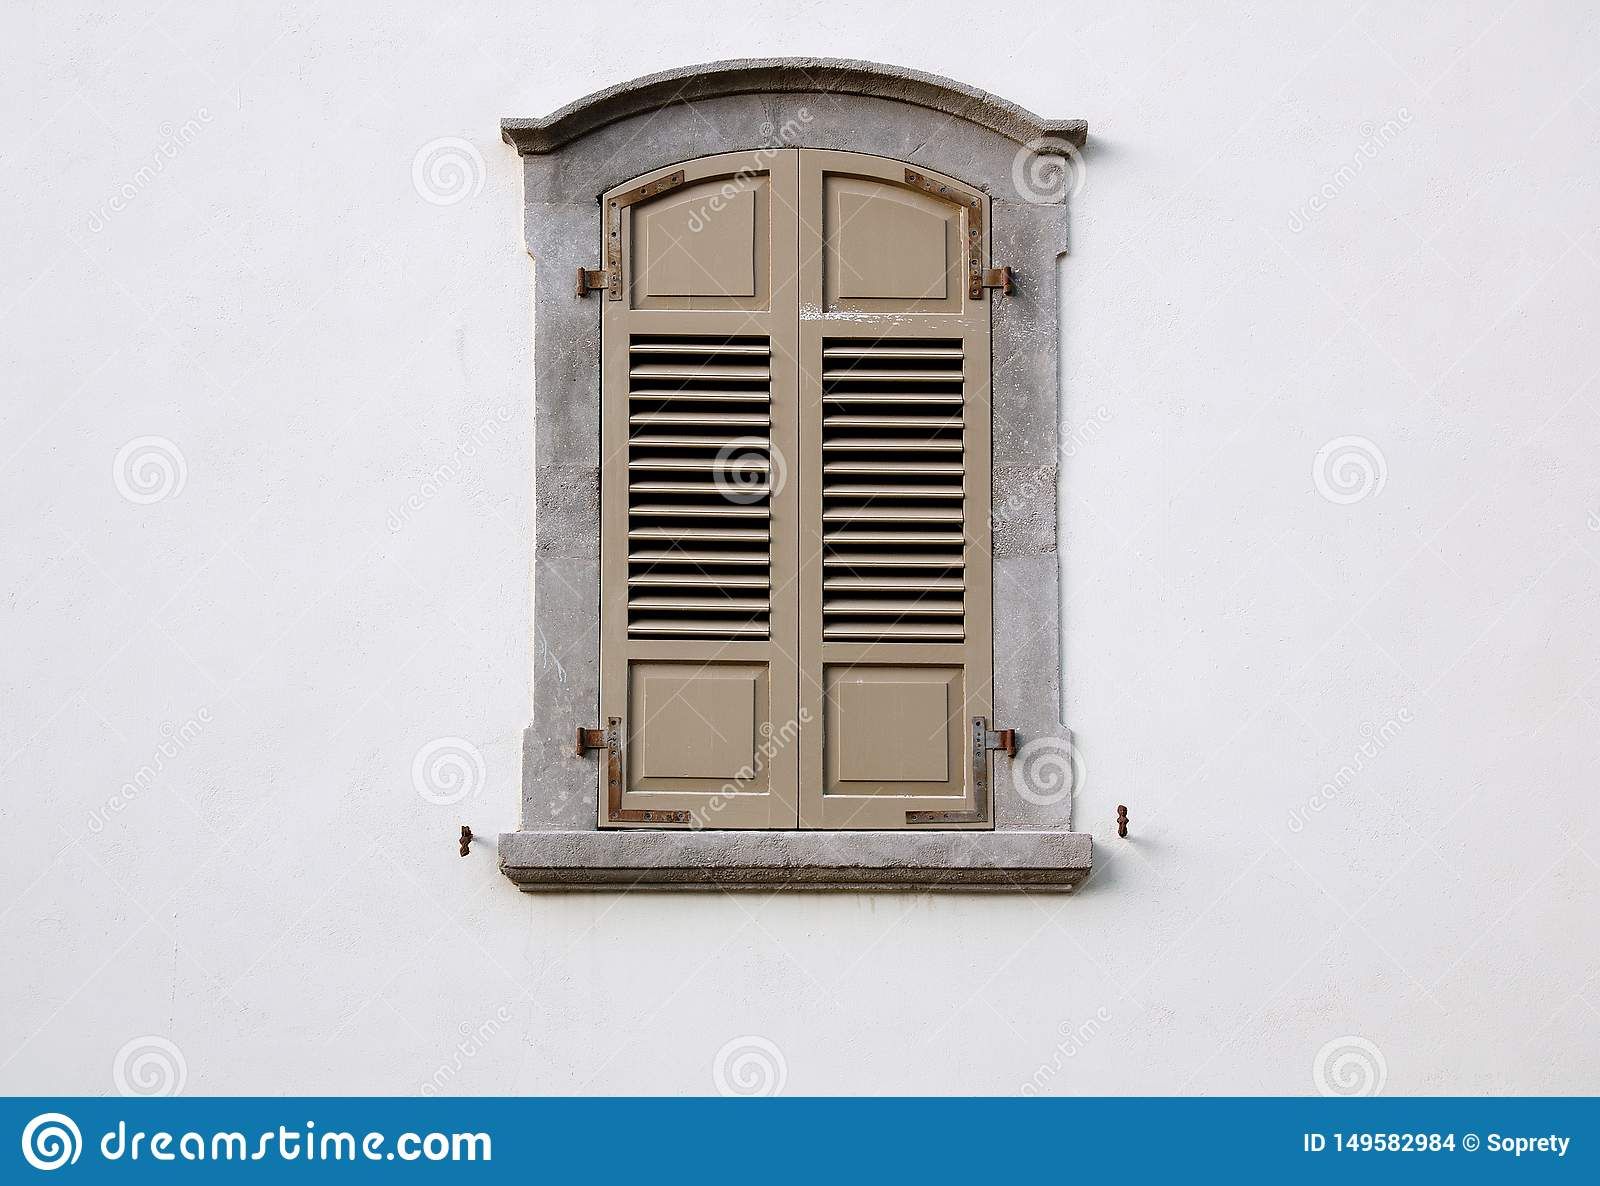 Arched Window With Wooden Shutters On A White Wall Stock